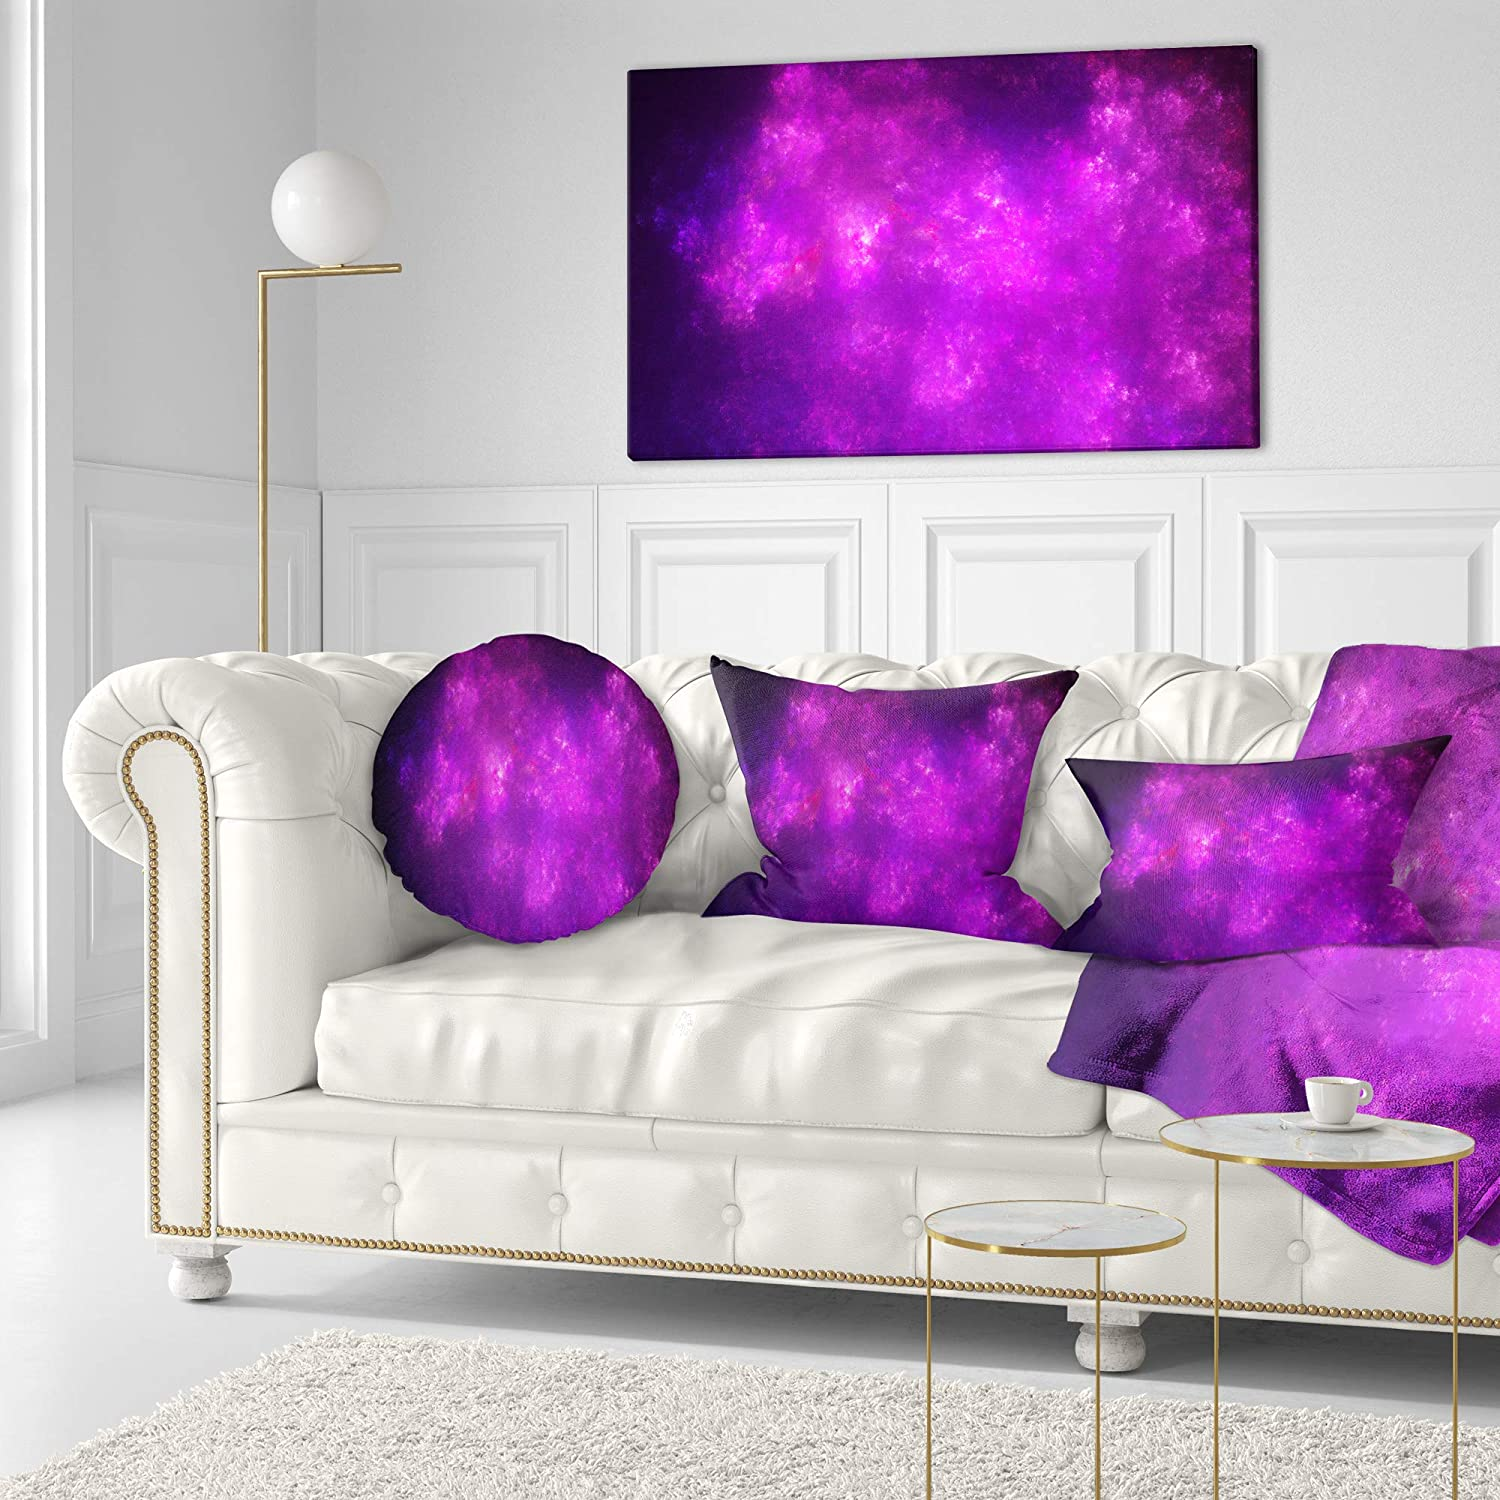 Designart CU16372-16-16-C Purple Starry Fractal Sky Abstract Round Cushion Cover for Living Room Sofa Throw Pillow 16 Inches